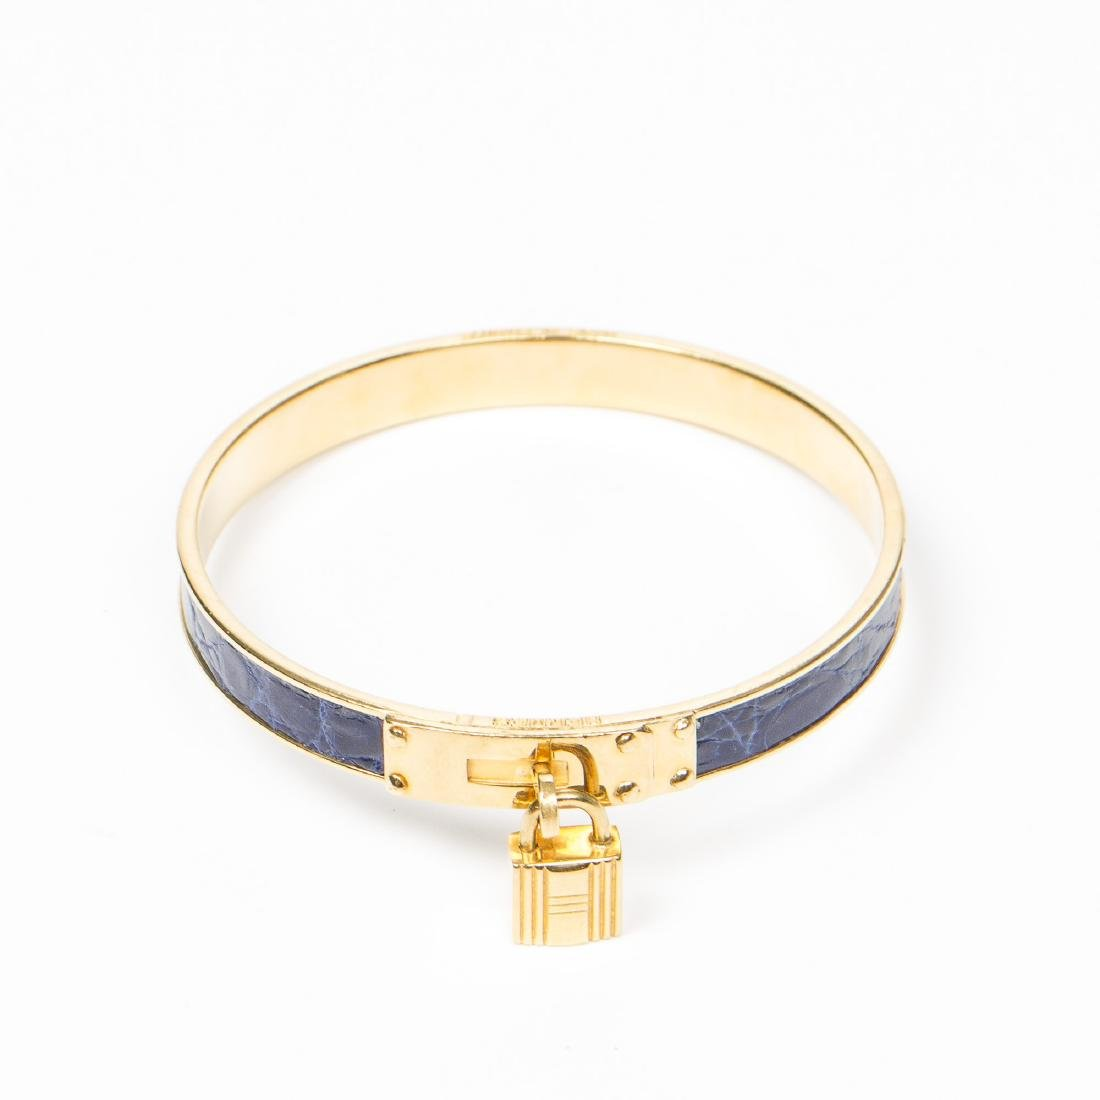 Hermes Kelly Lock Bangle